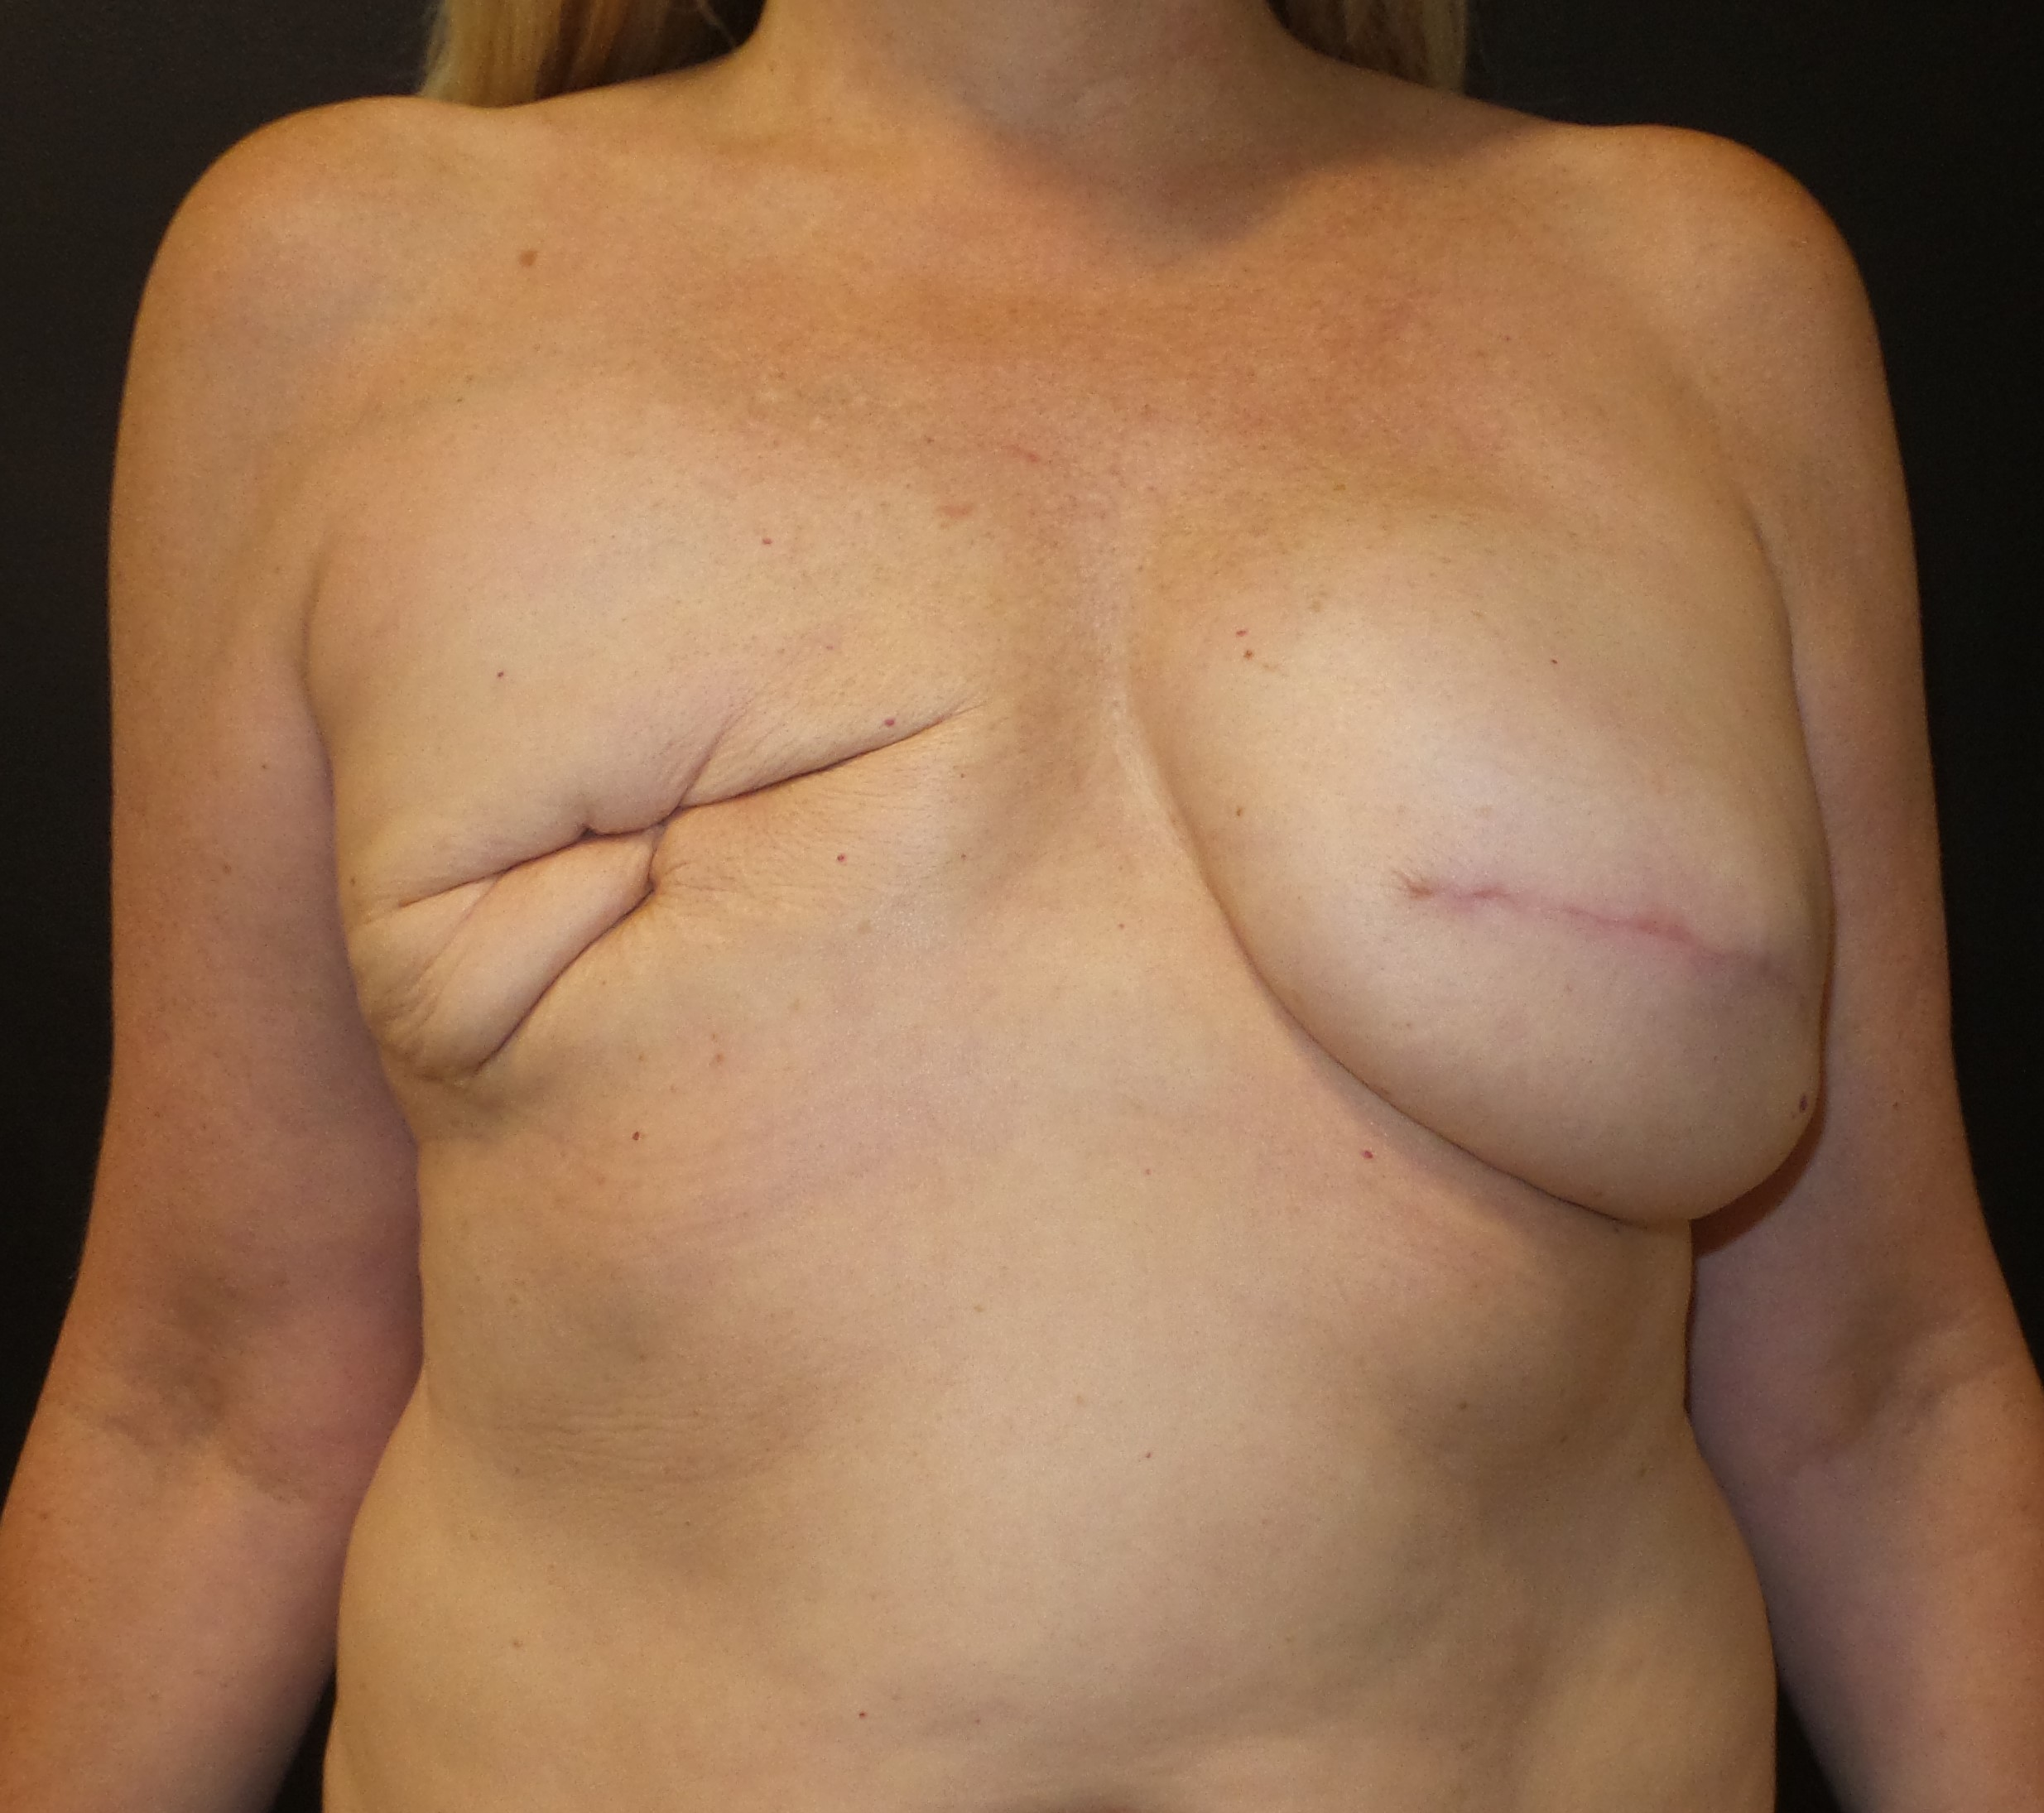 Breast tissue expander infection in breast reconstruction